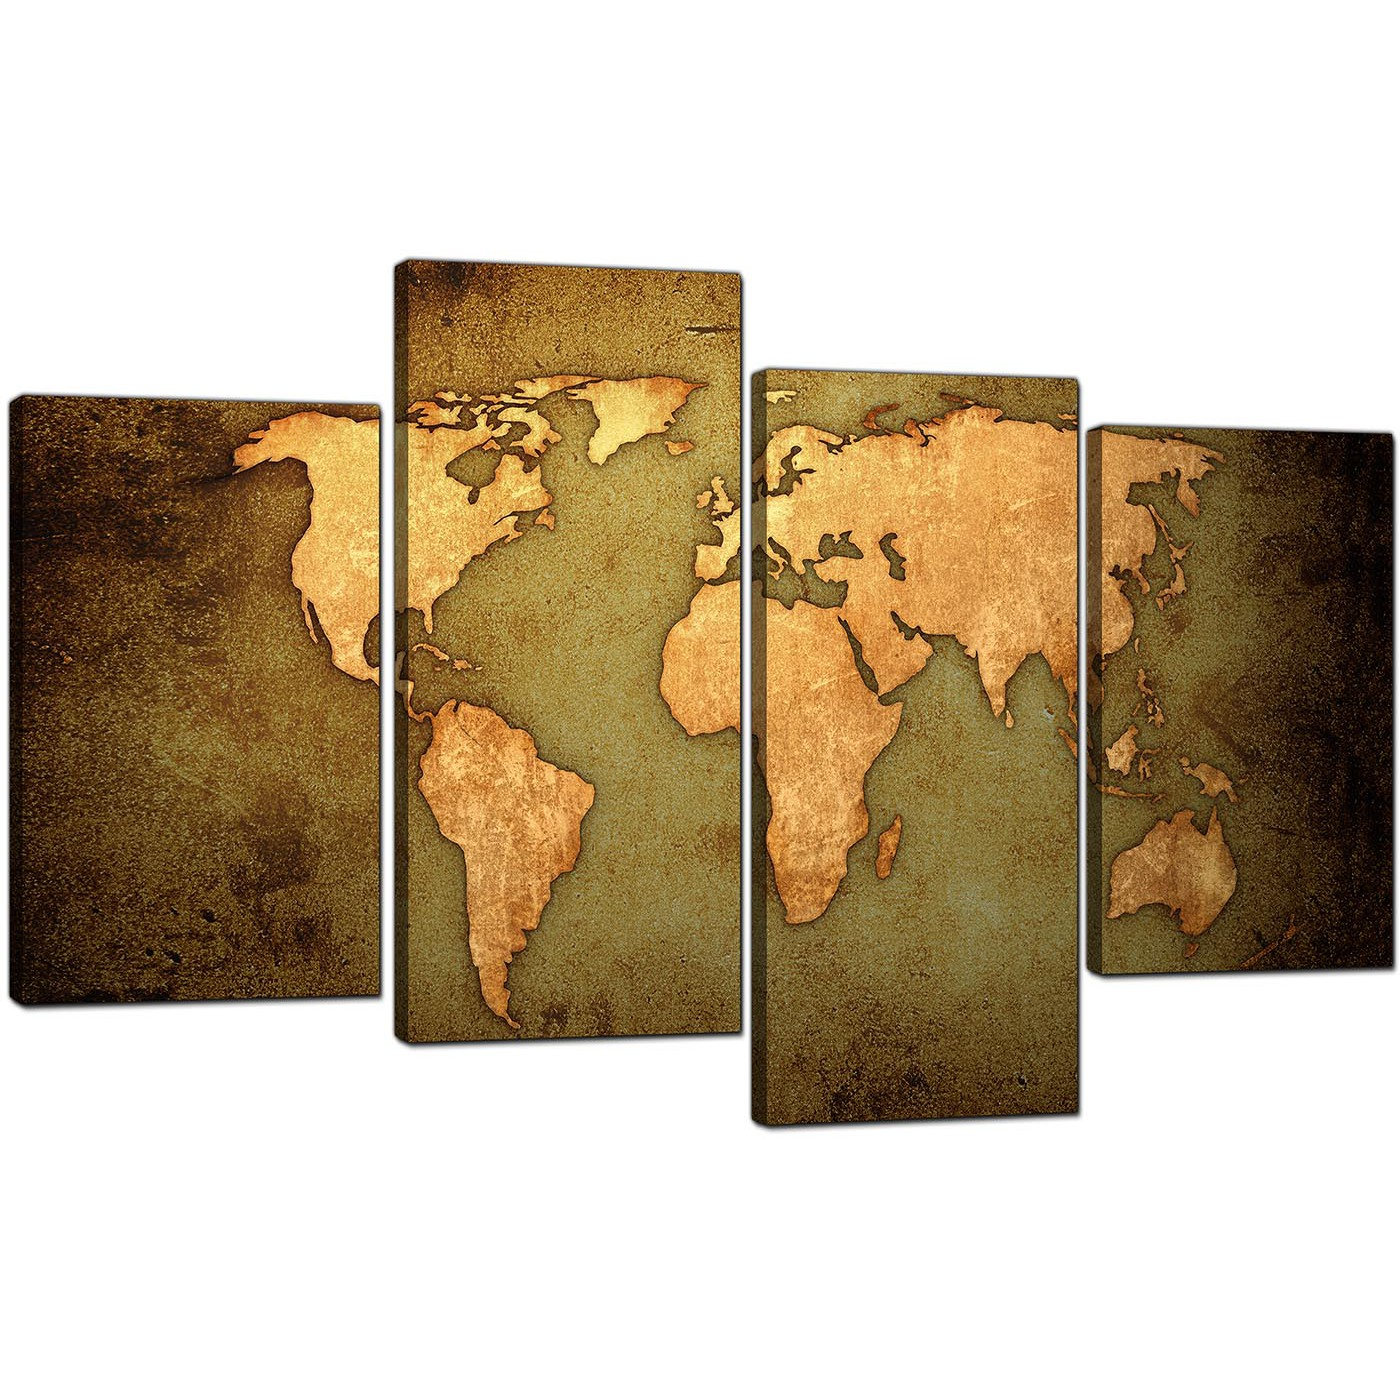 Canvas prints of a world map in green and brown for your living room display gallery item 3 world map canvas art in antique style for office display gallery item 4 gumiabroncs